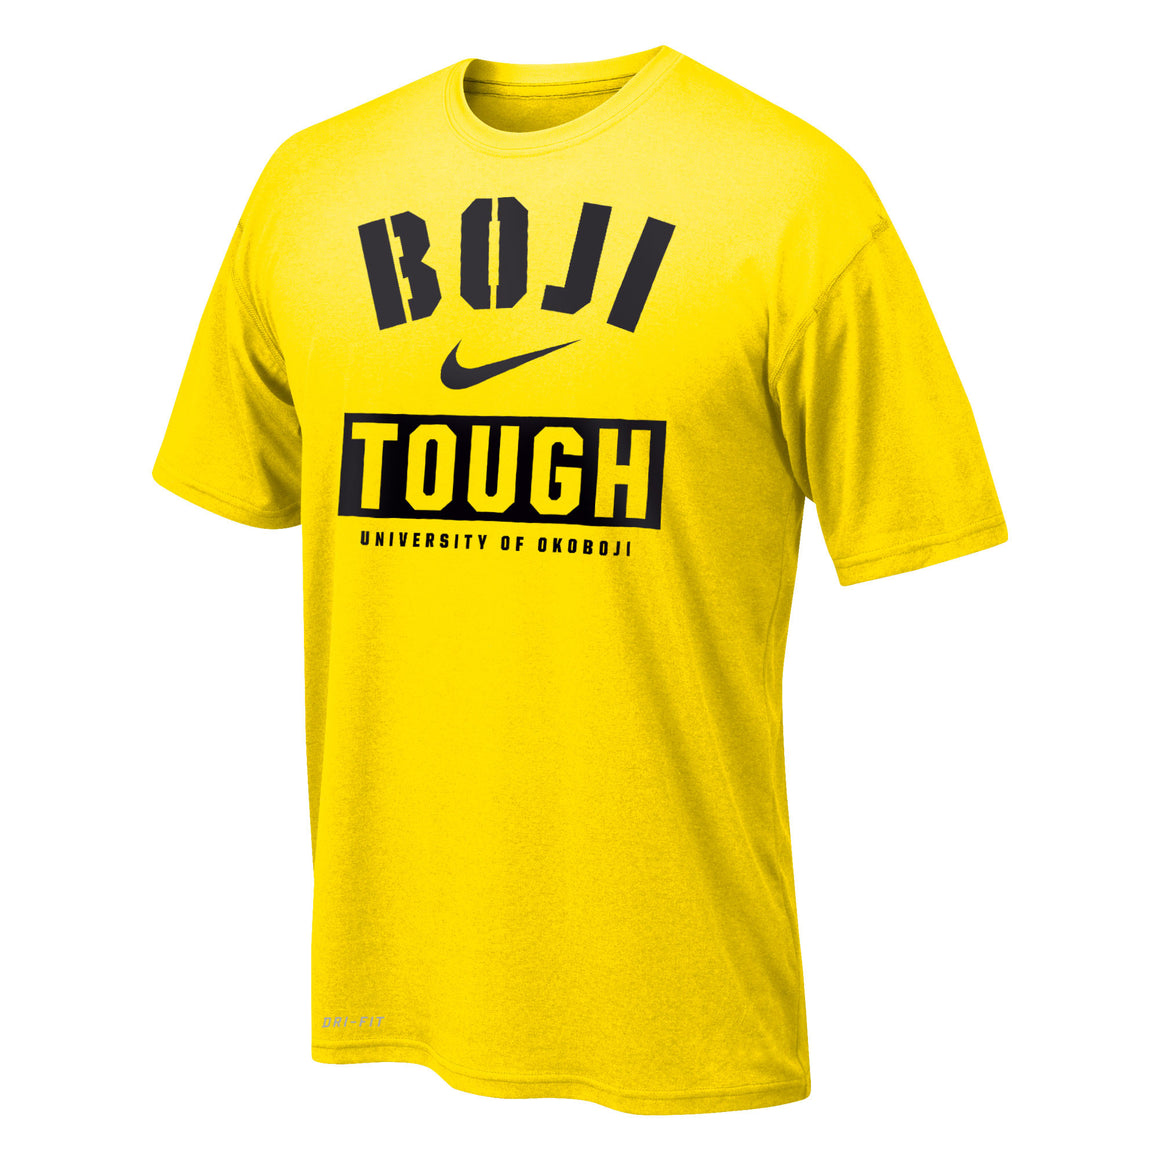 "Boy's Dri-FIT Legend 2.0 Short Sleeve Tee ""BOJI TOUGH"" - Yellow"